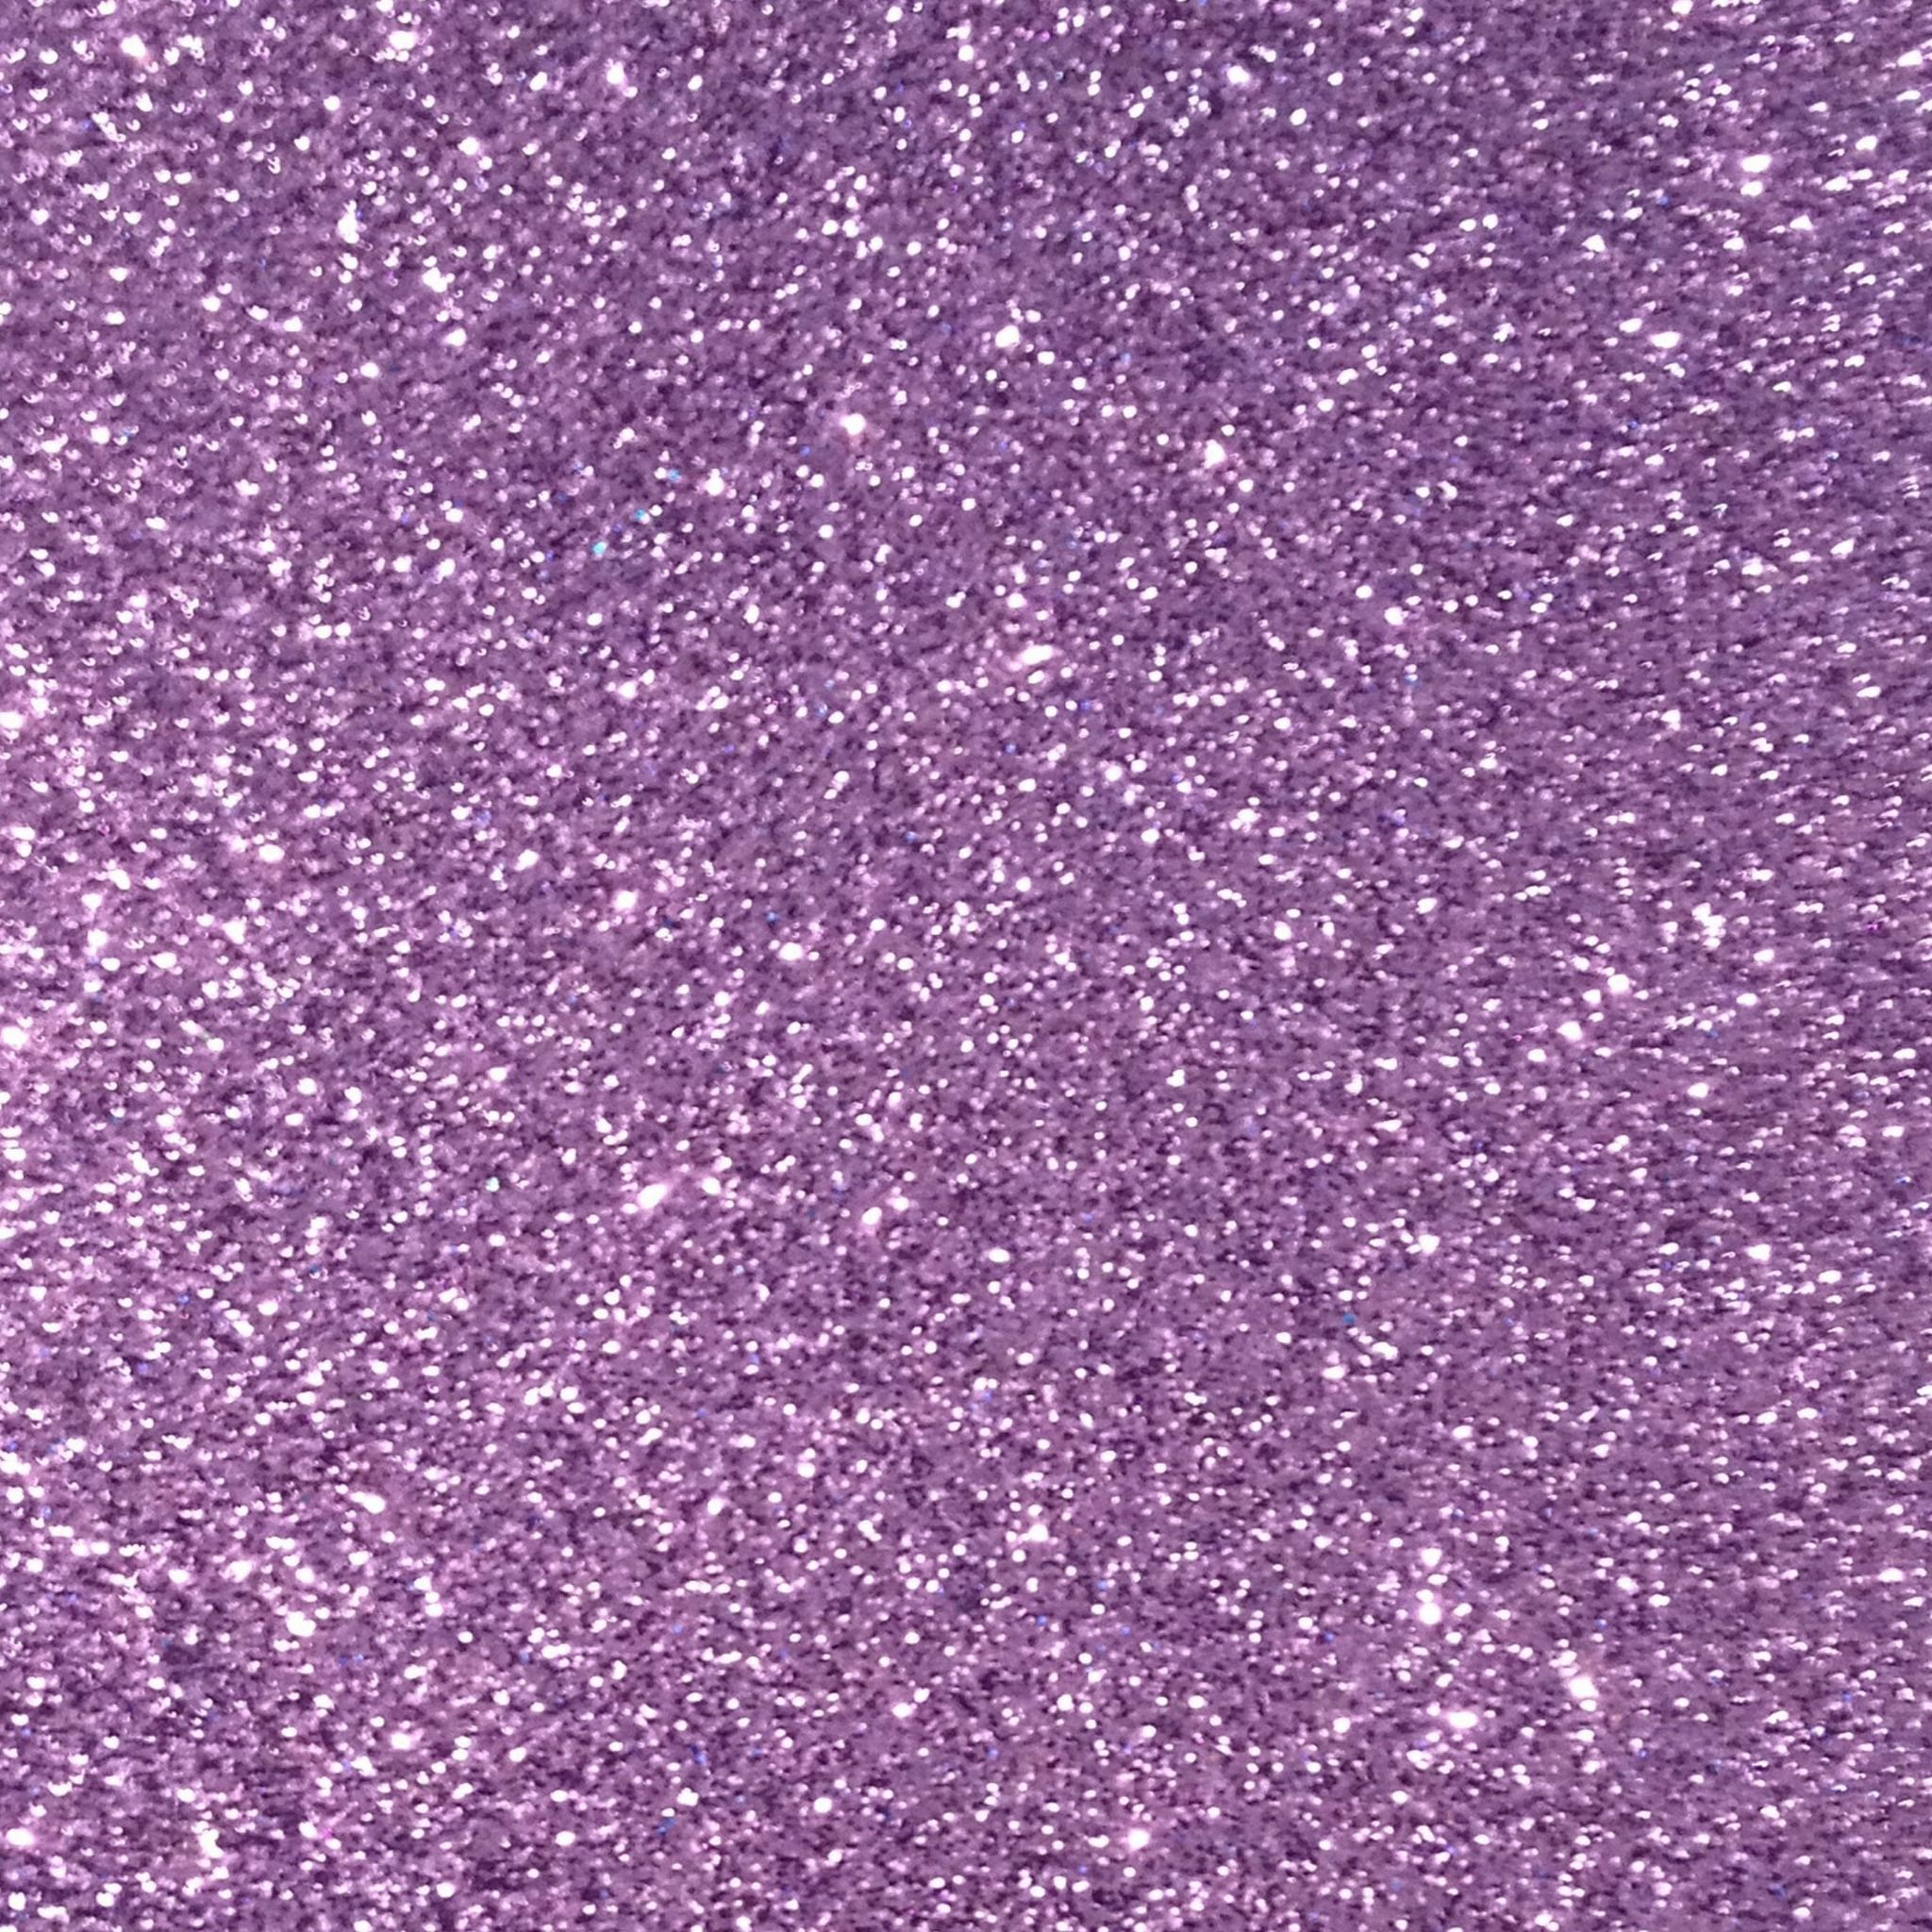 violet glitter tap image for more glitter wallpapers for. Black Bedroom Furniture Sets. Home Design Ideas